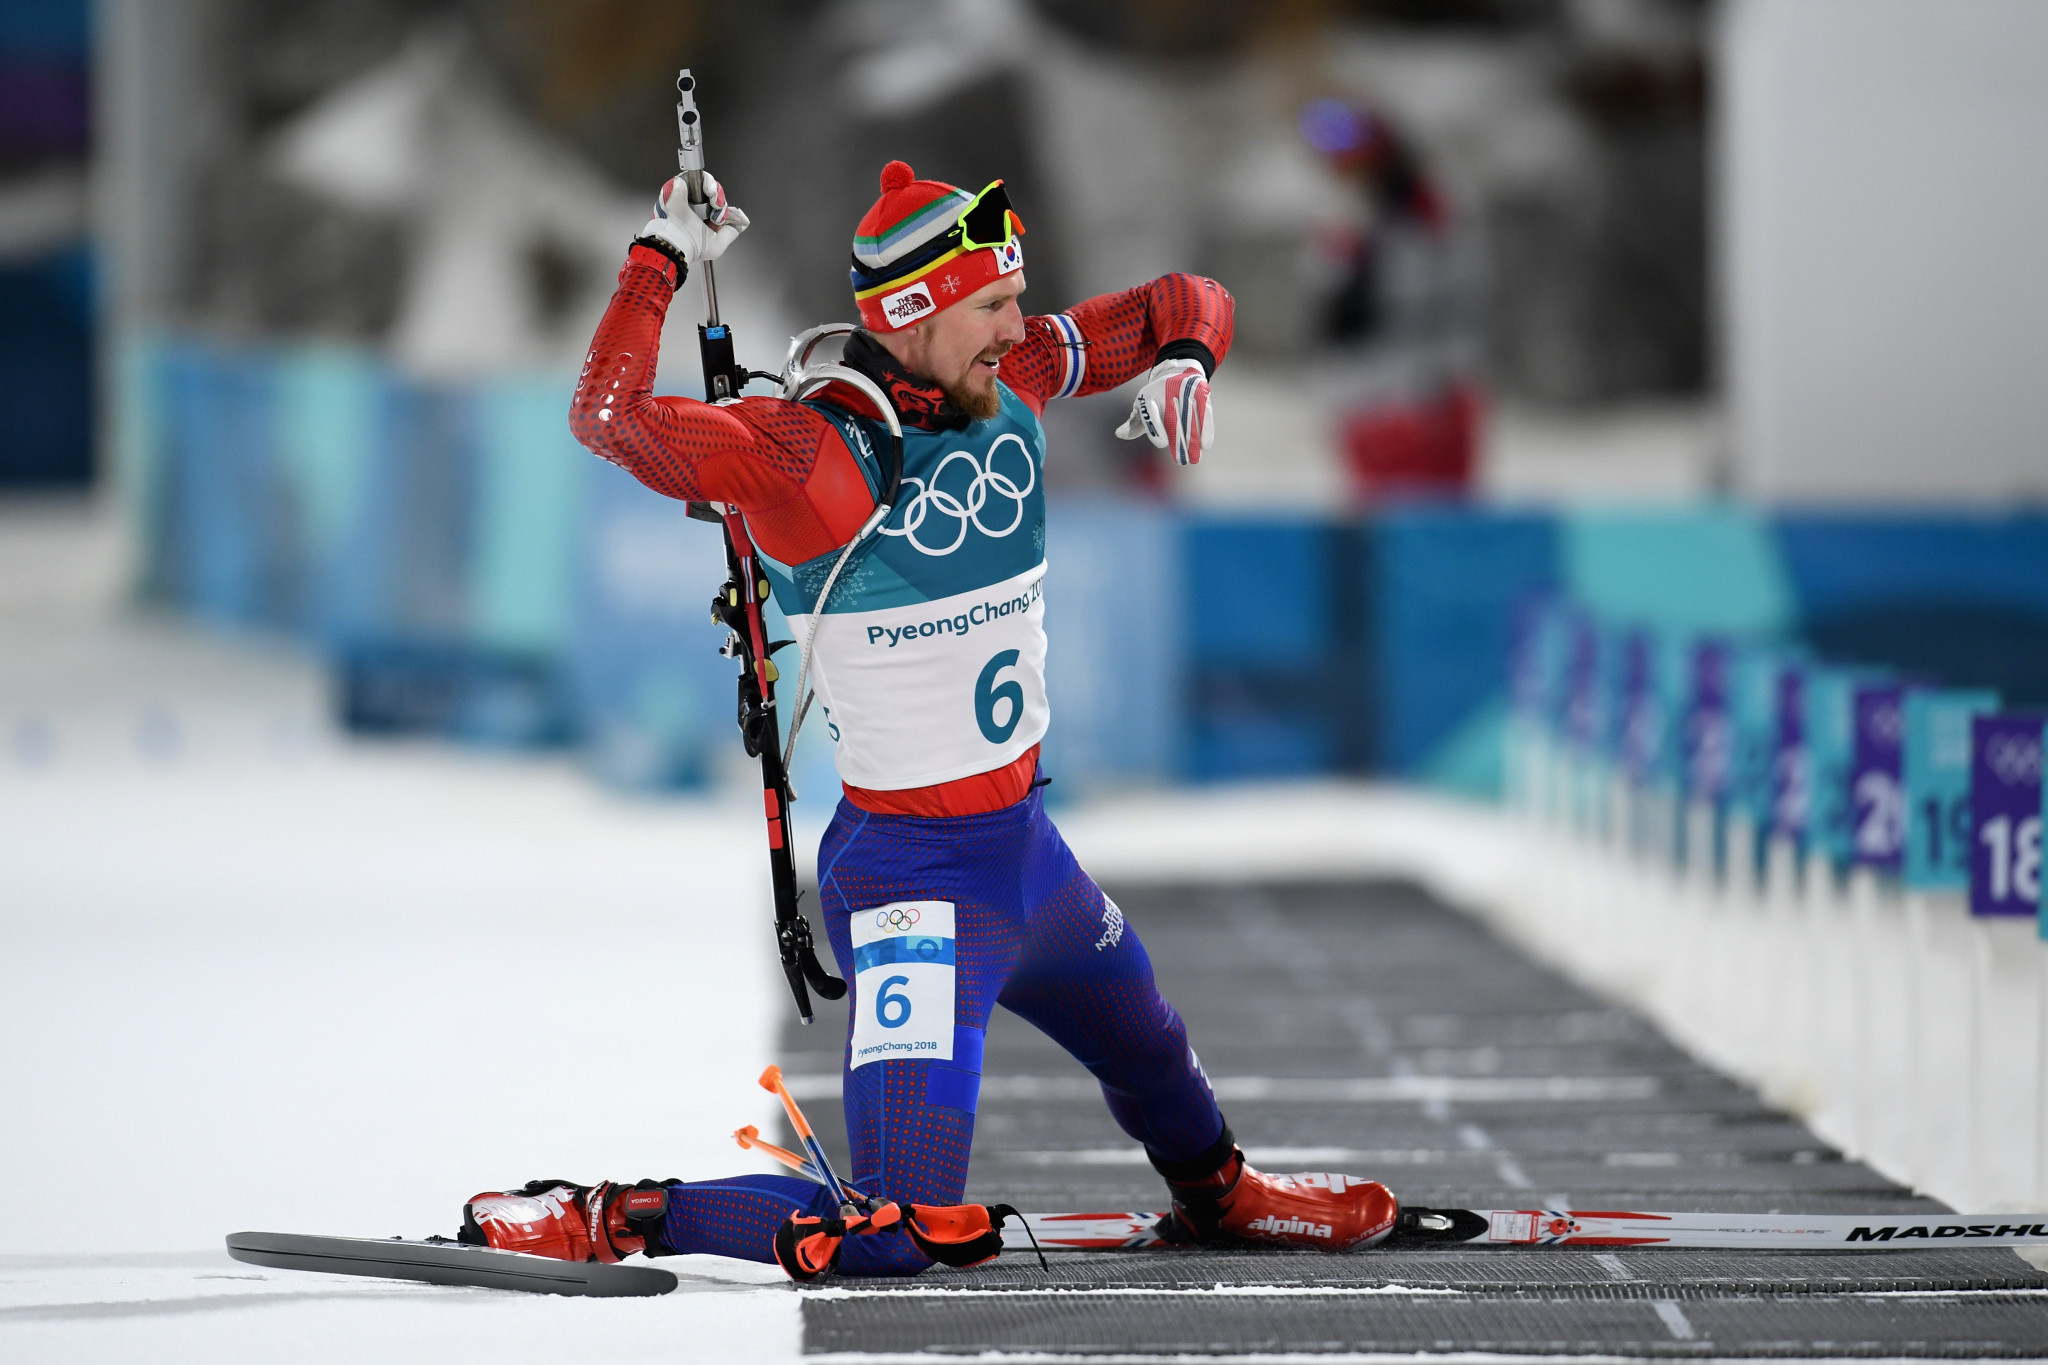 Biathlete Lapshin given 12-month ban for doping offence, can compete at Beijing 2022